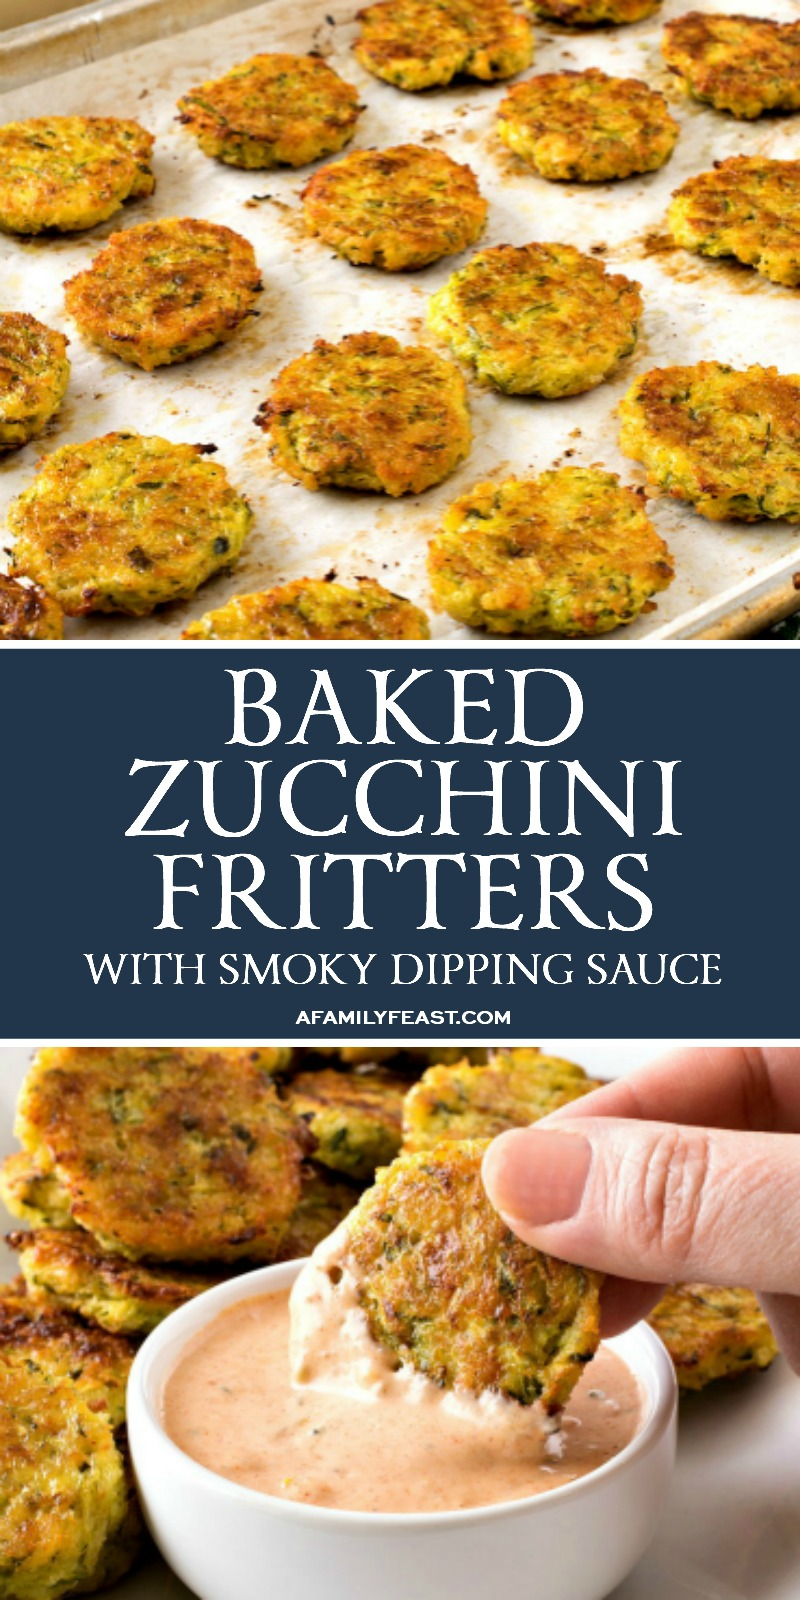 Baked Zucchini Fritters with Smoky Dipping Sauce